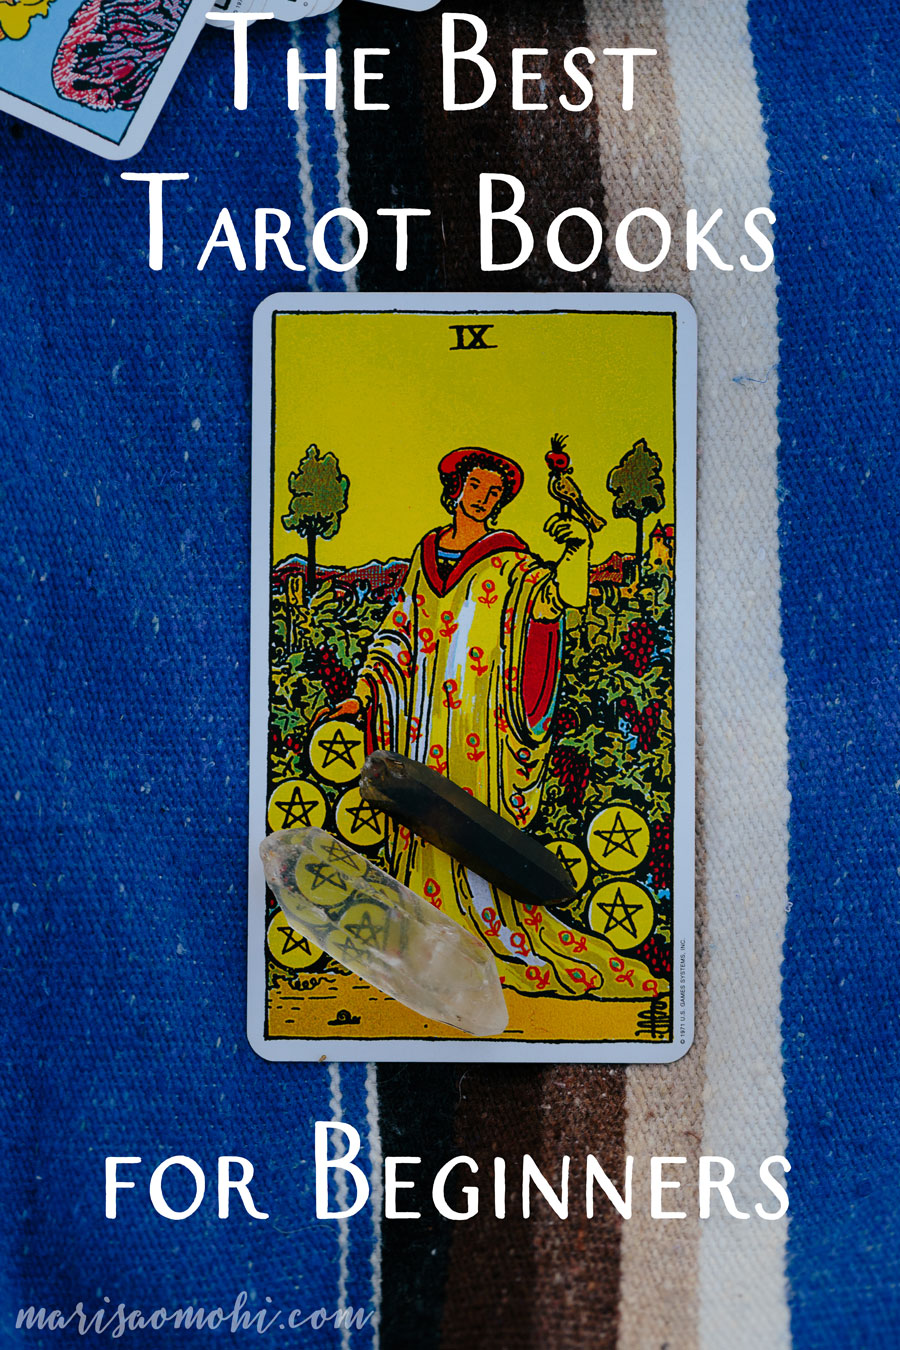 The Best Tarot Books for Beginners | Looking for the best tarot books for beginners? Click here to see the 5 books that will help you get started on your tarot journey!